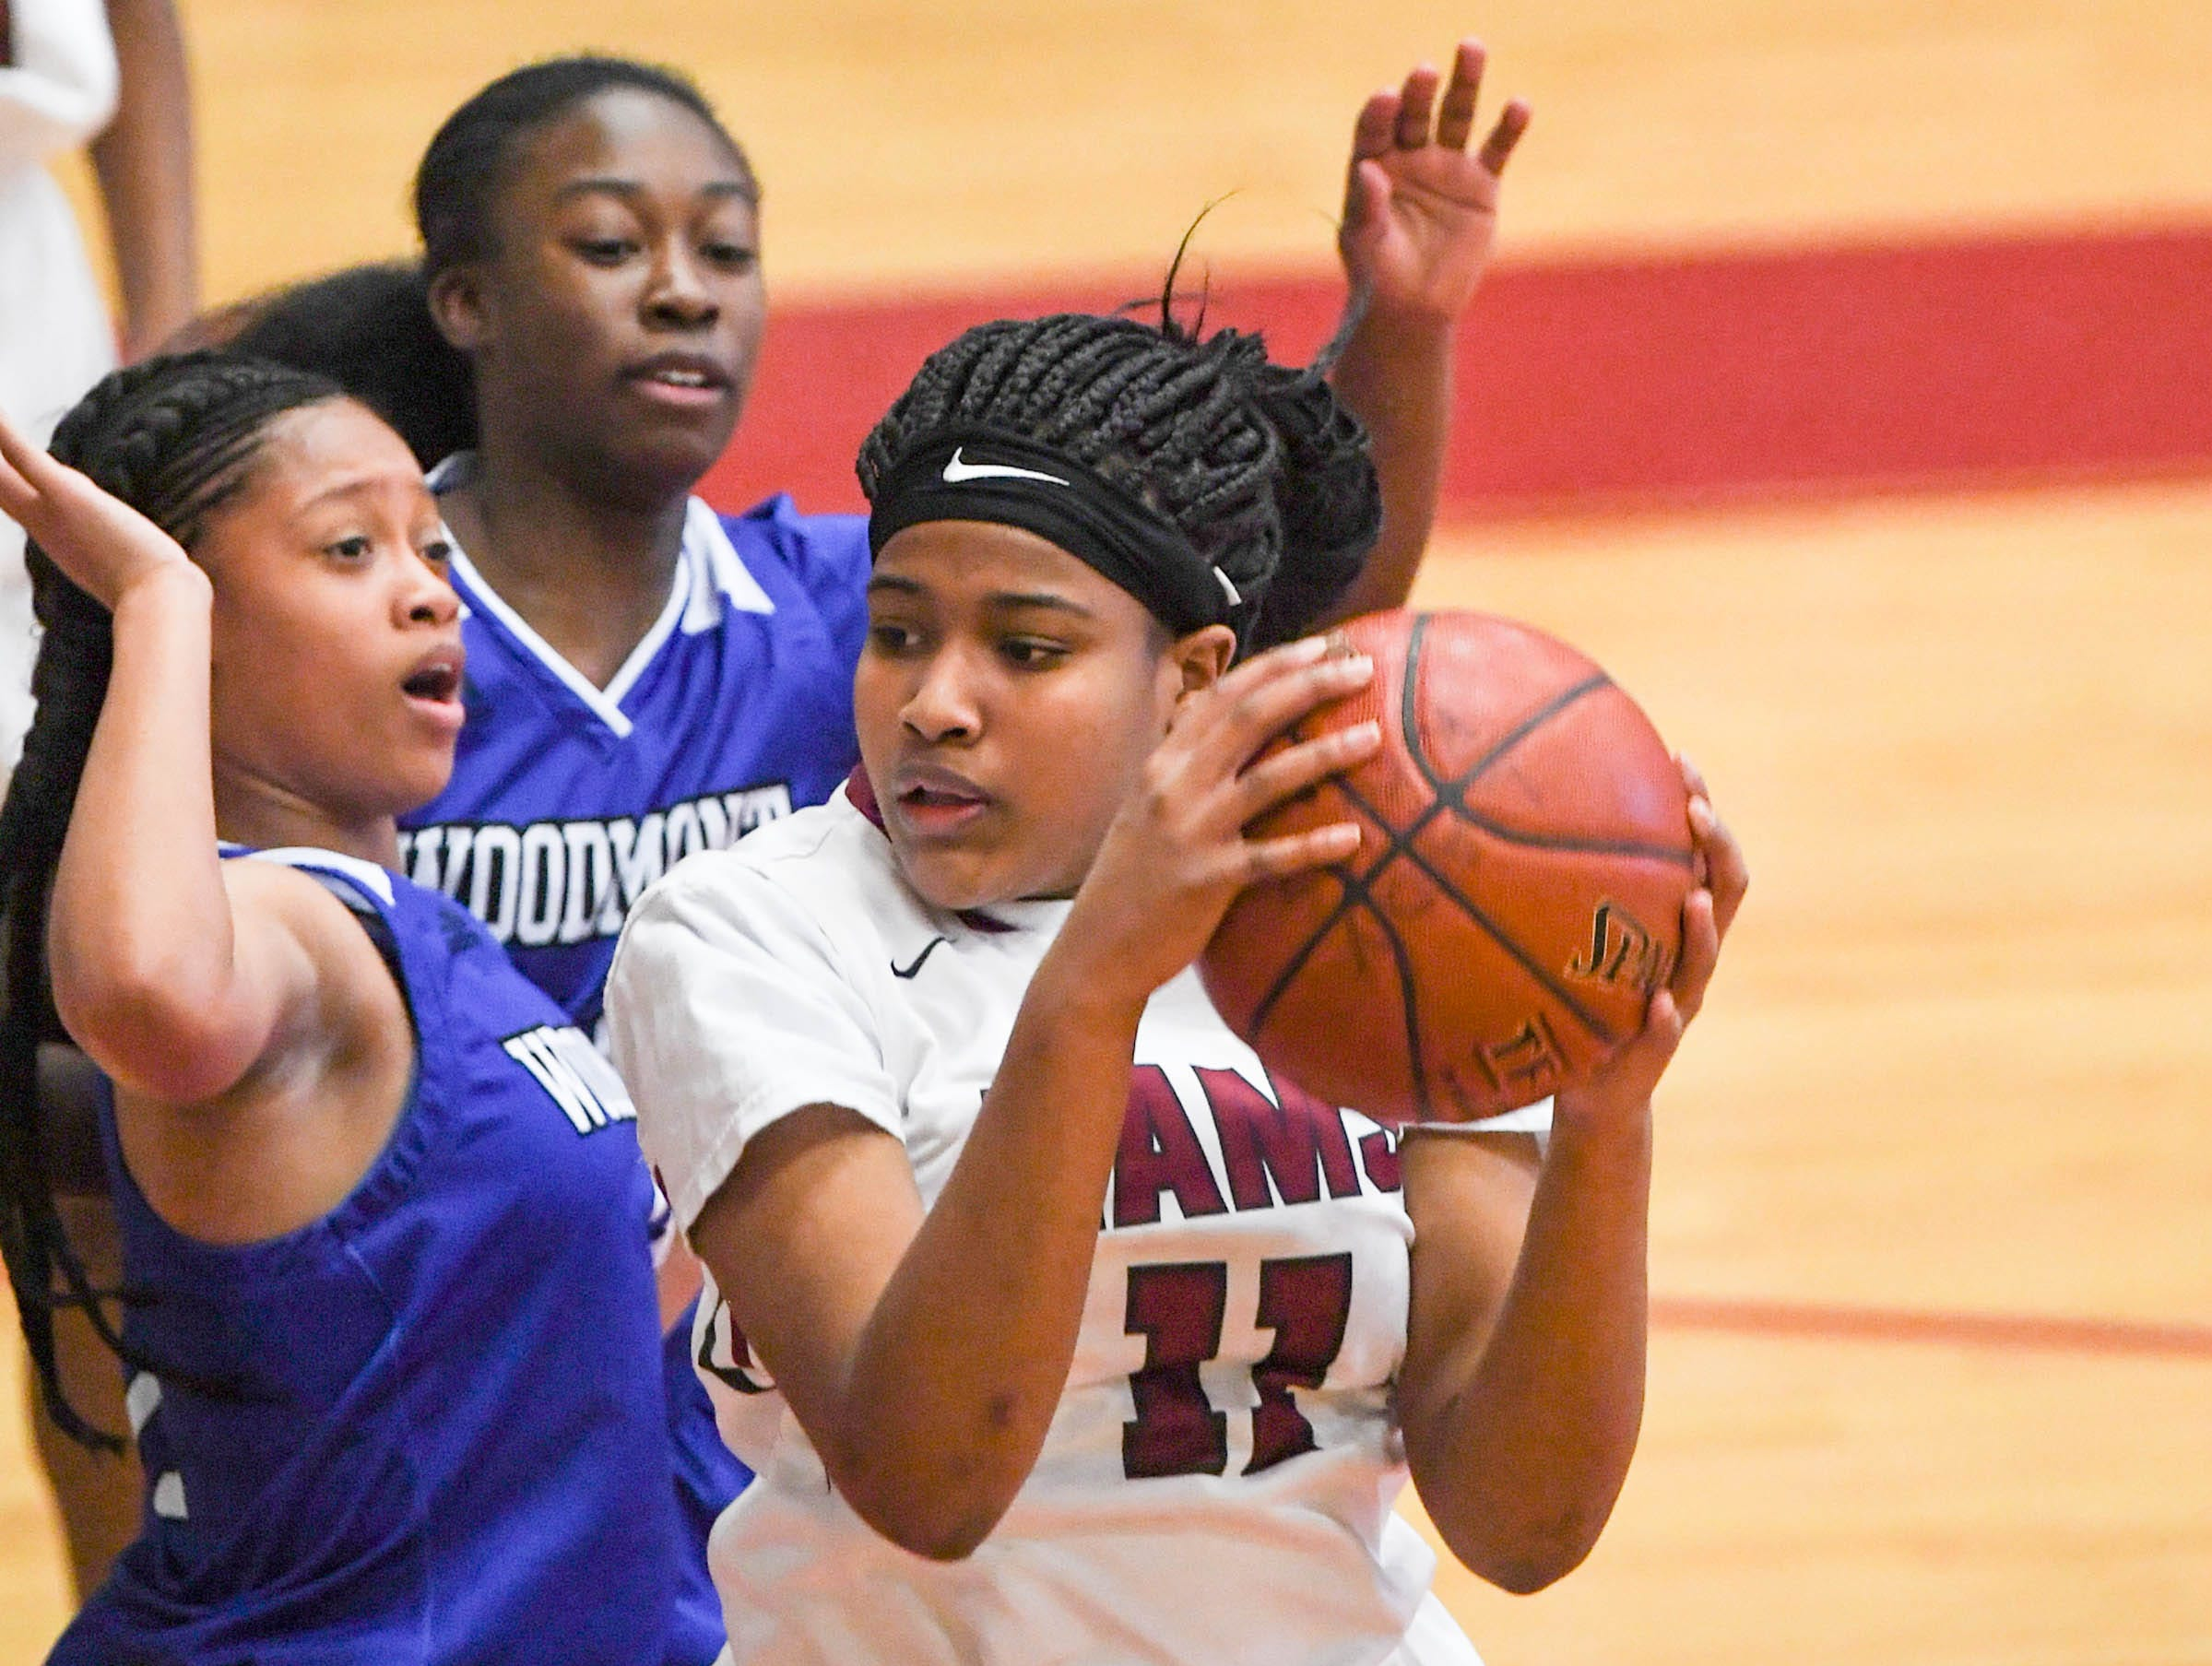 Westside freshman Destiny Middleton(11) dribbles near Woodmont sophomore Charlee Brewster(2) during the first quarter at Westside High School in Anderson on Tuesday.